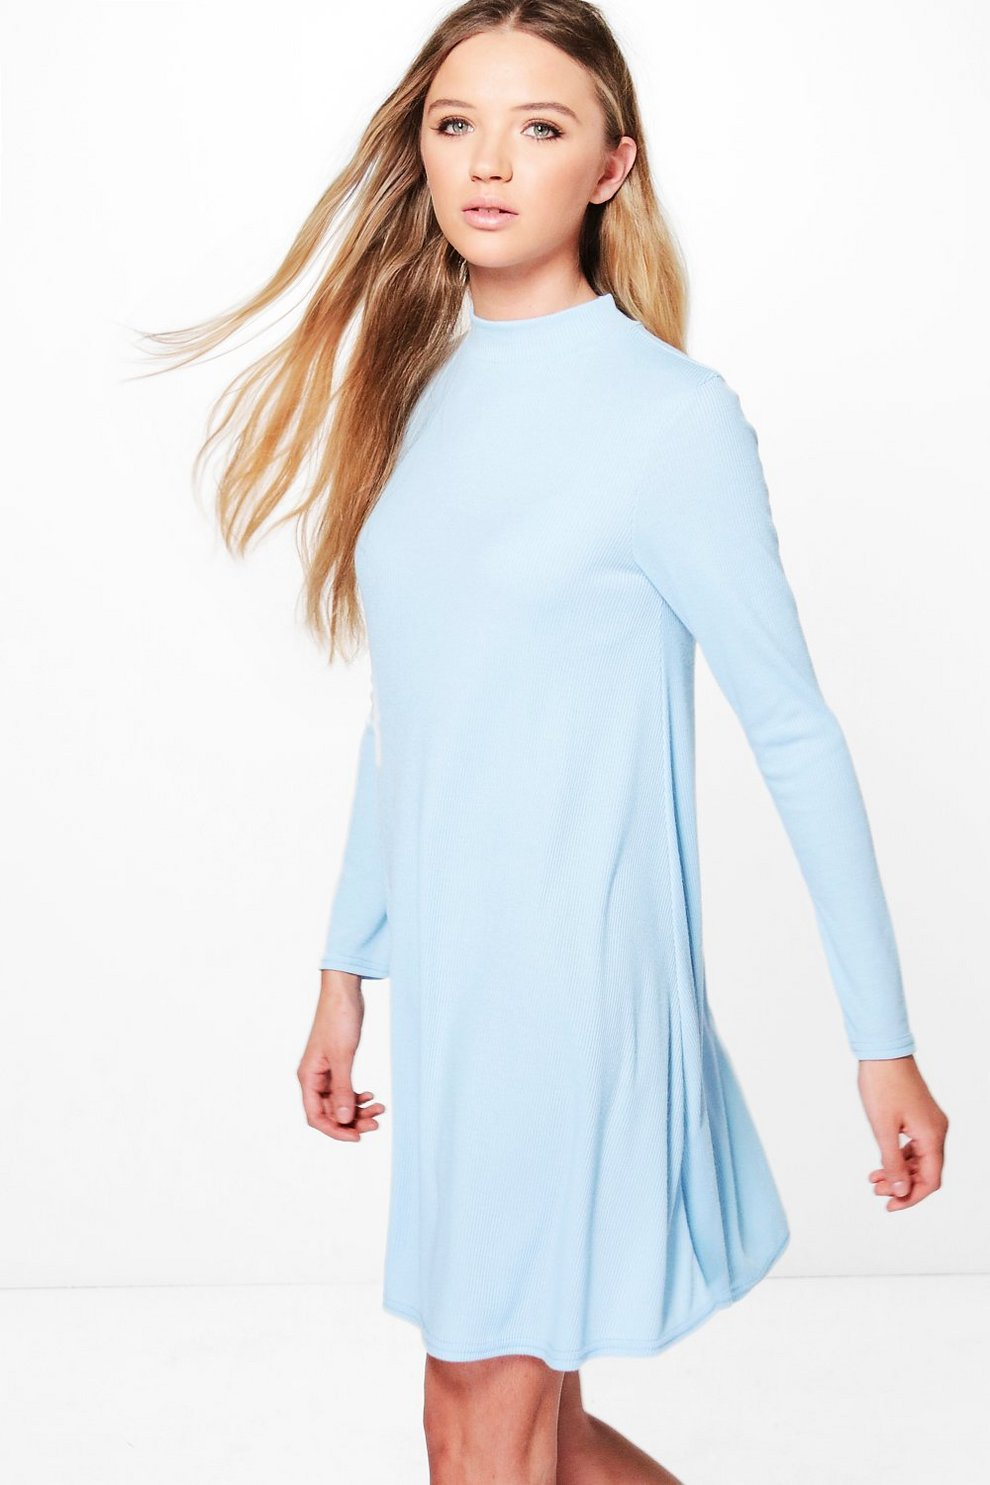 8a0fc11961e8 Diana Turtle Neck Rib Knit Swing Dress | Boohoo